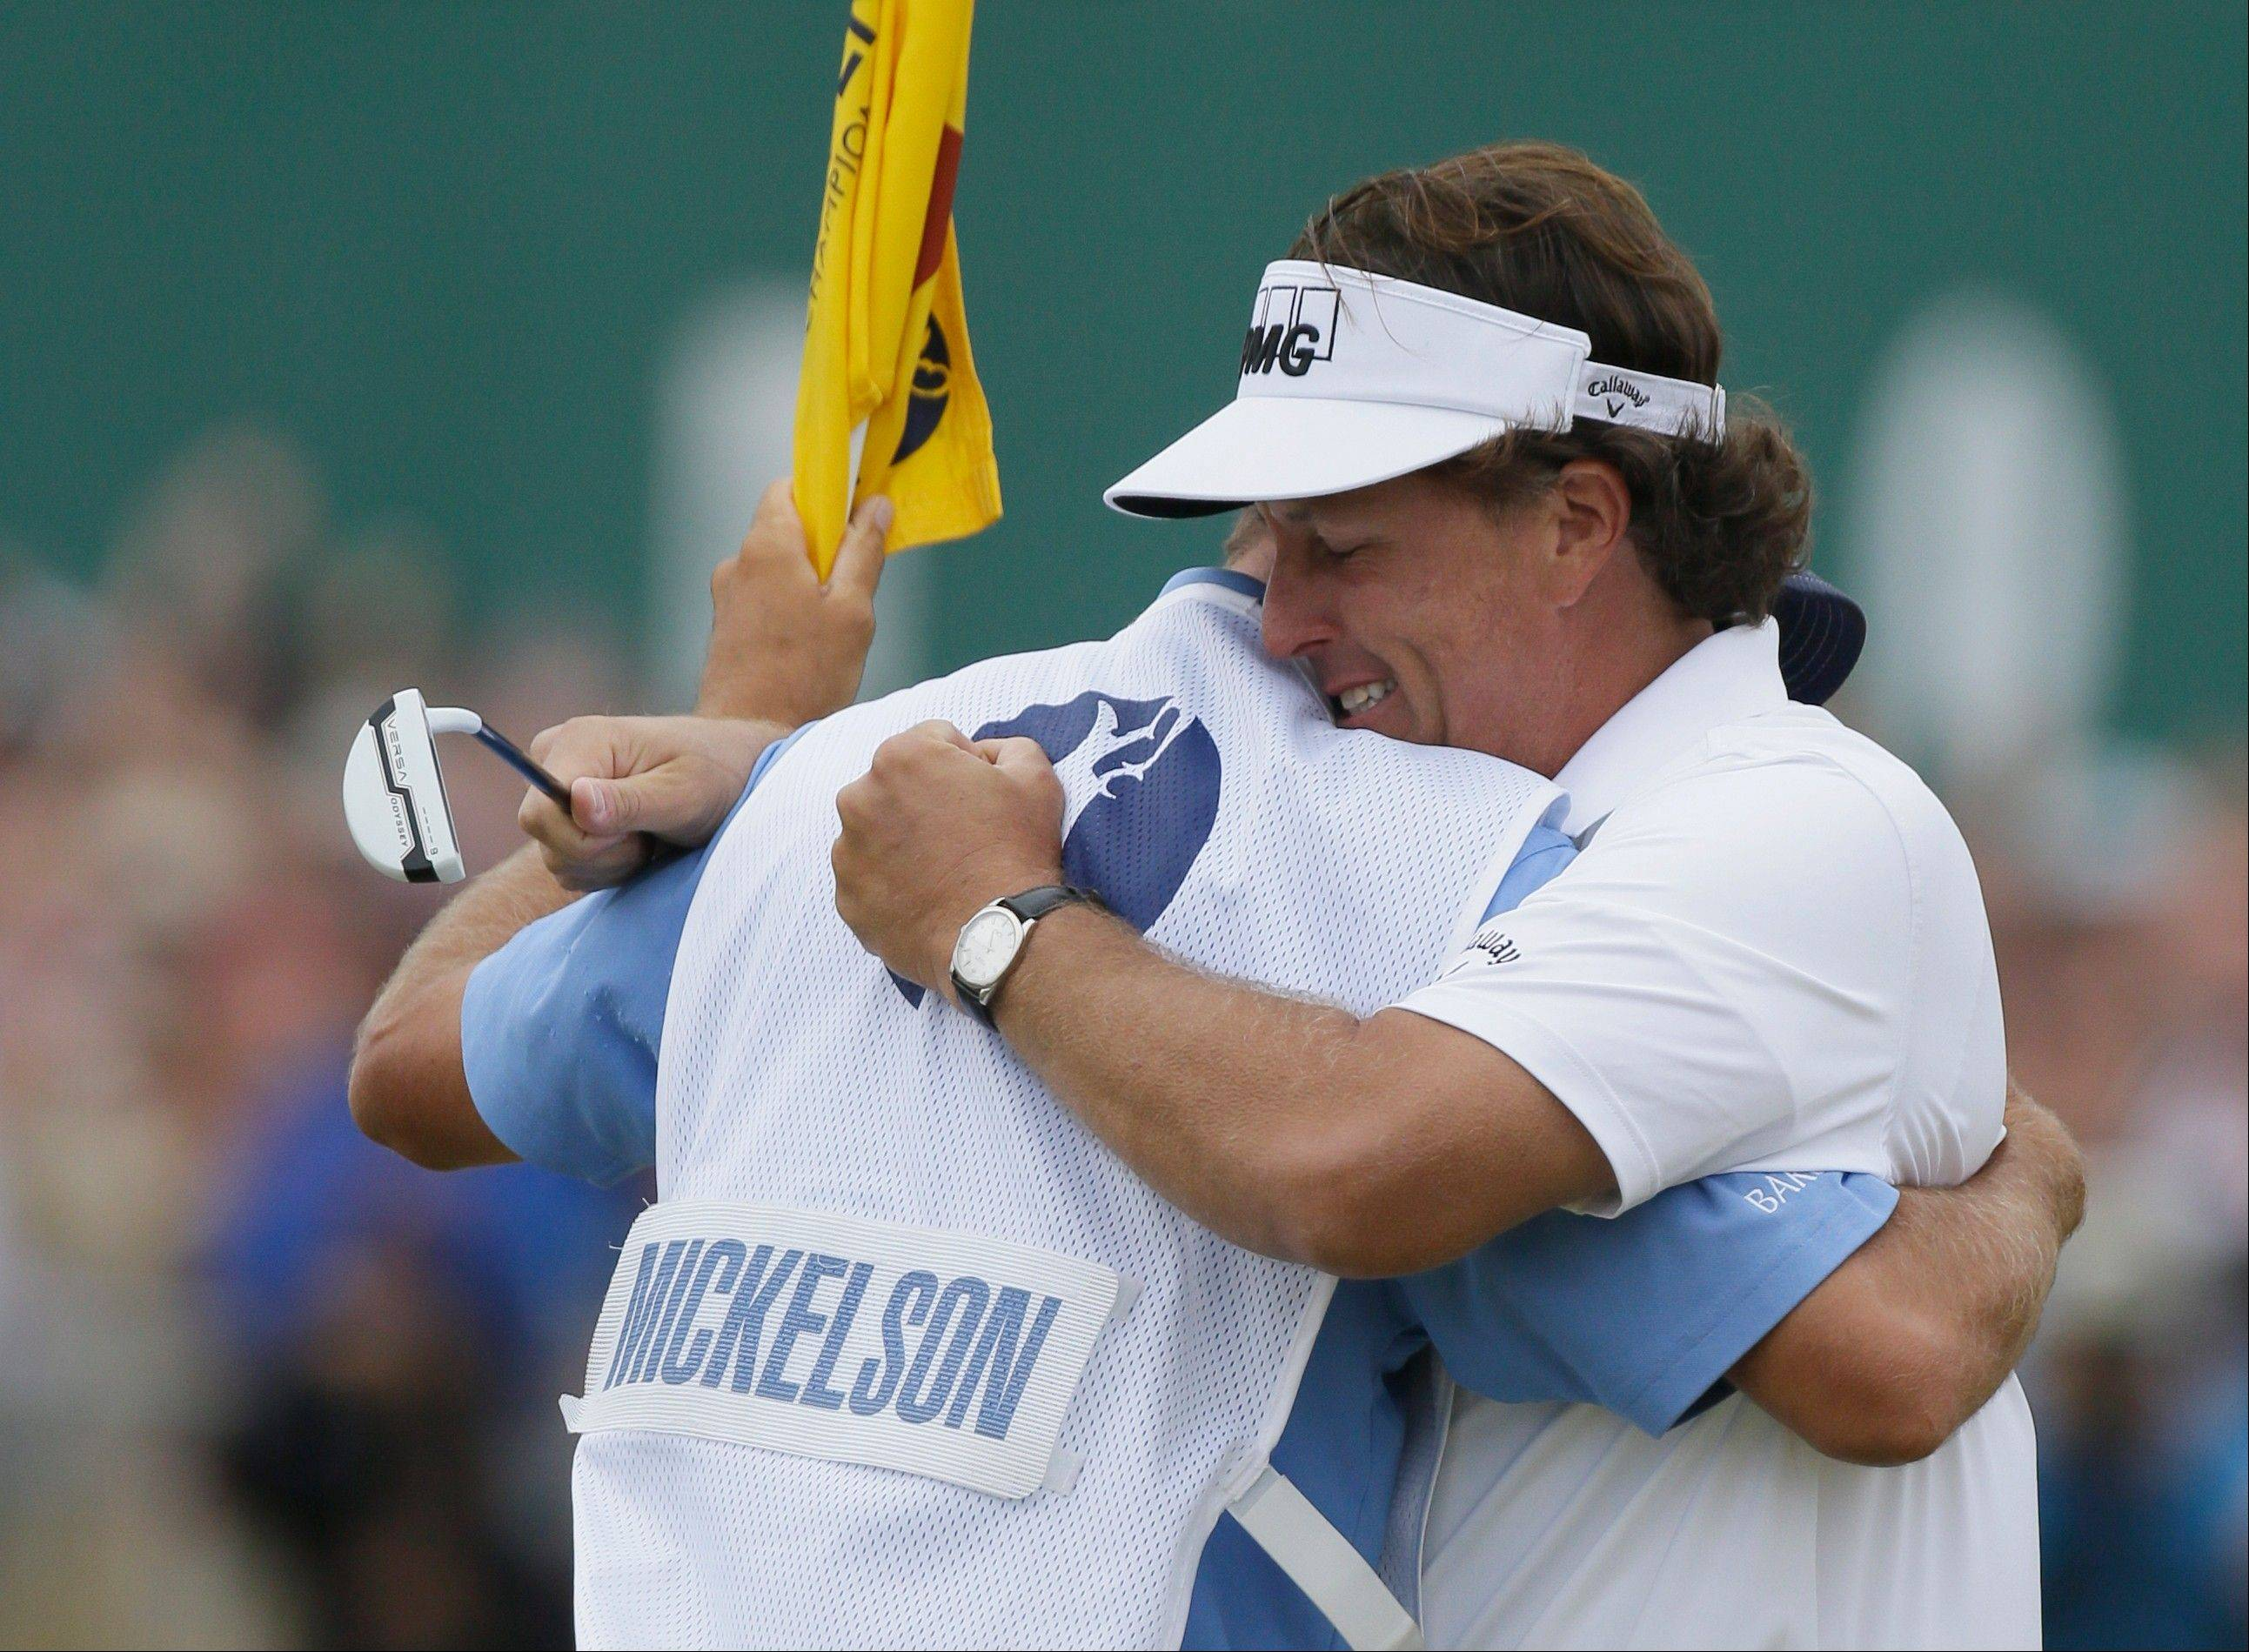 Phil Mickelson celebrates after his final putt on the 18th green with his caddie Jim Mackay during the final round Sunday of the British Open Golf Championship at Muirfield, Scotland.